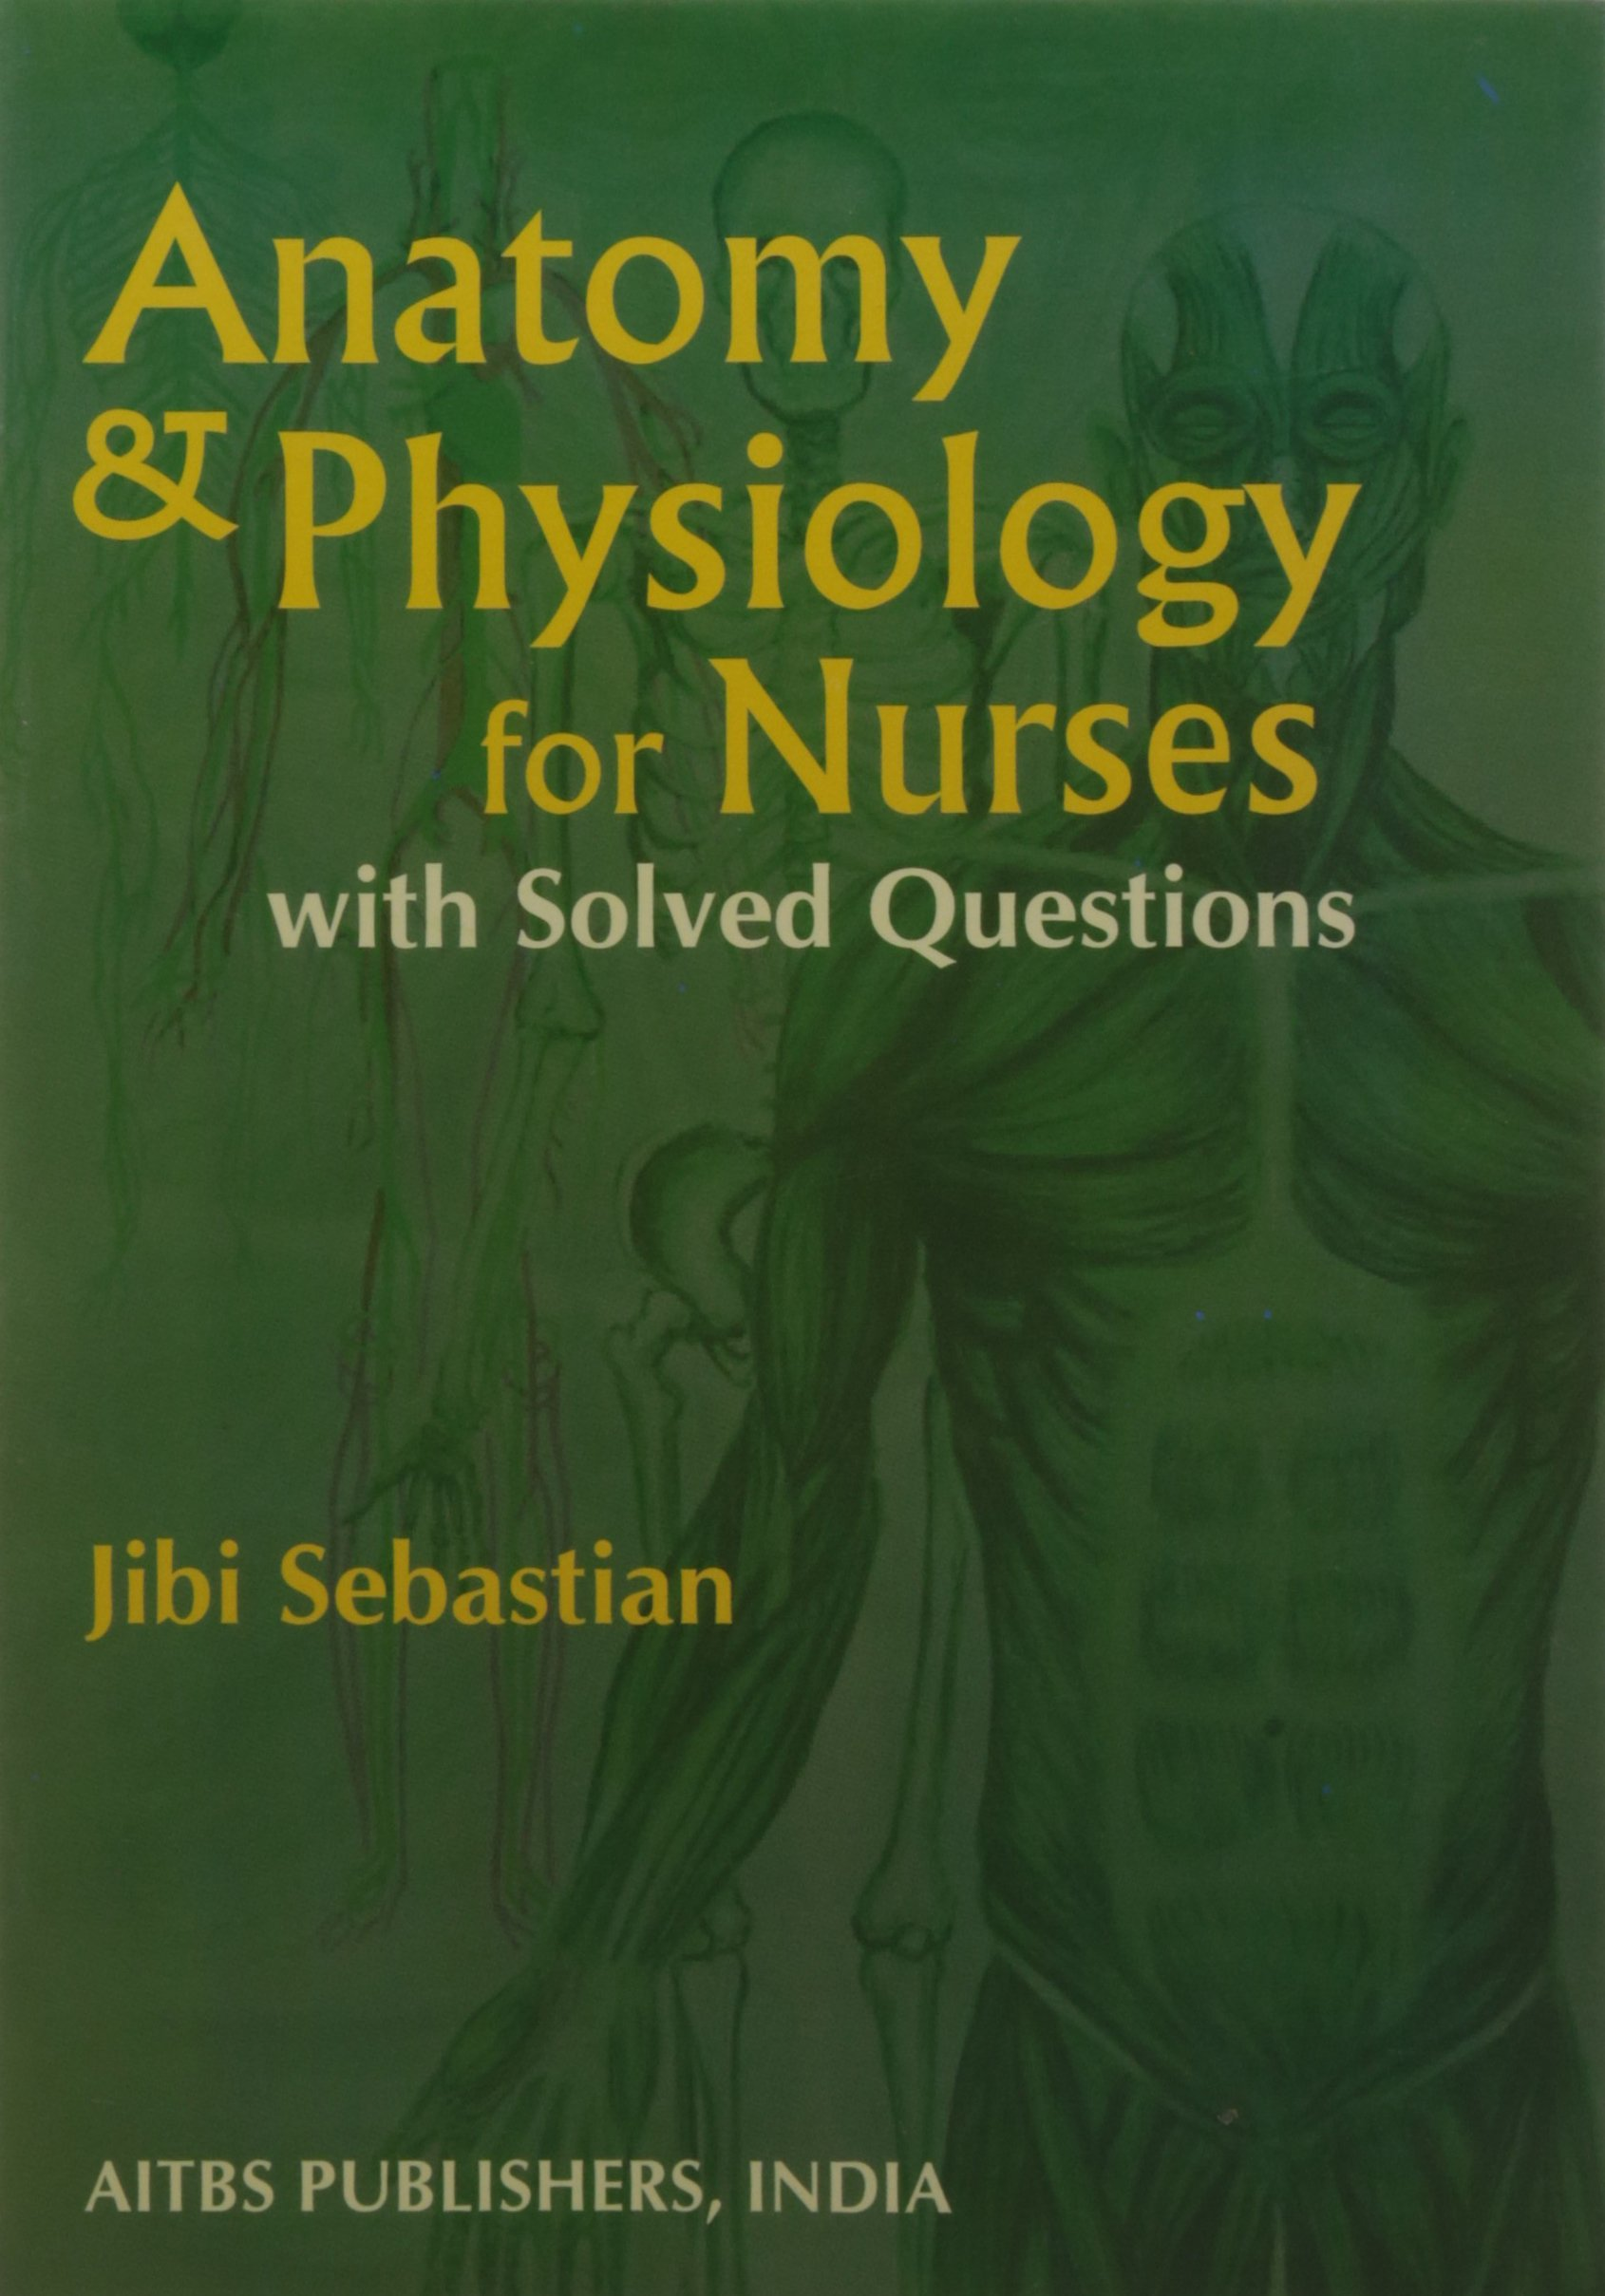 Buy Anatomy & Physiology for Nurse with Solved Questions Book Online ...